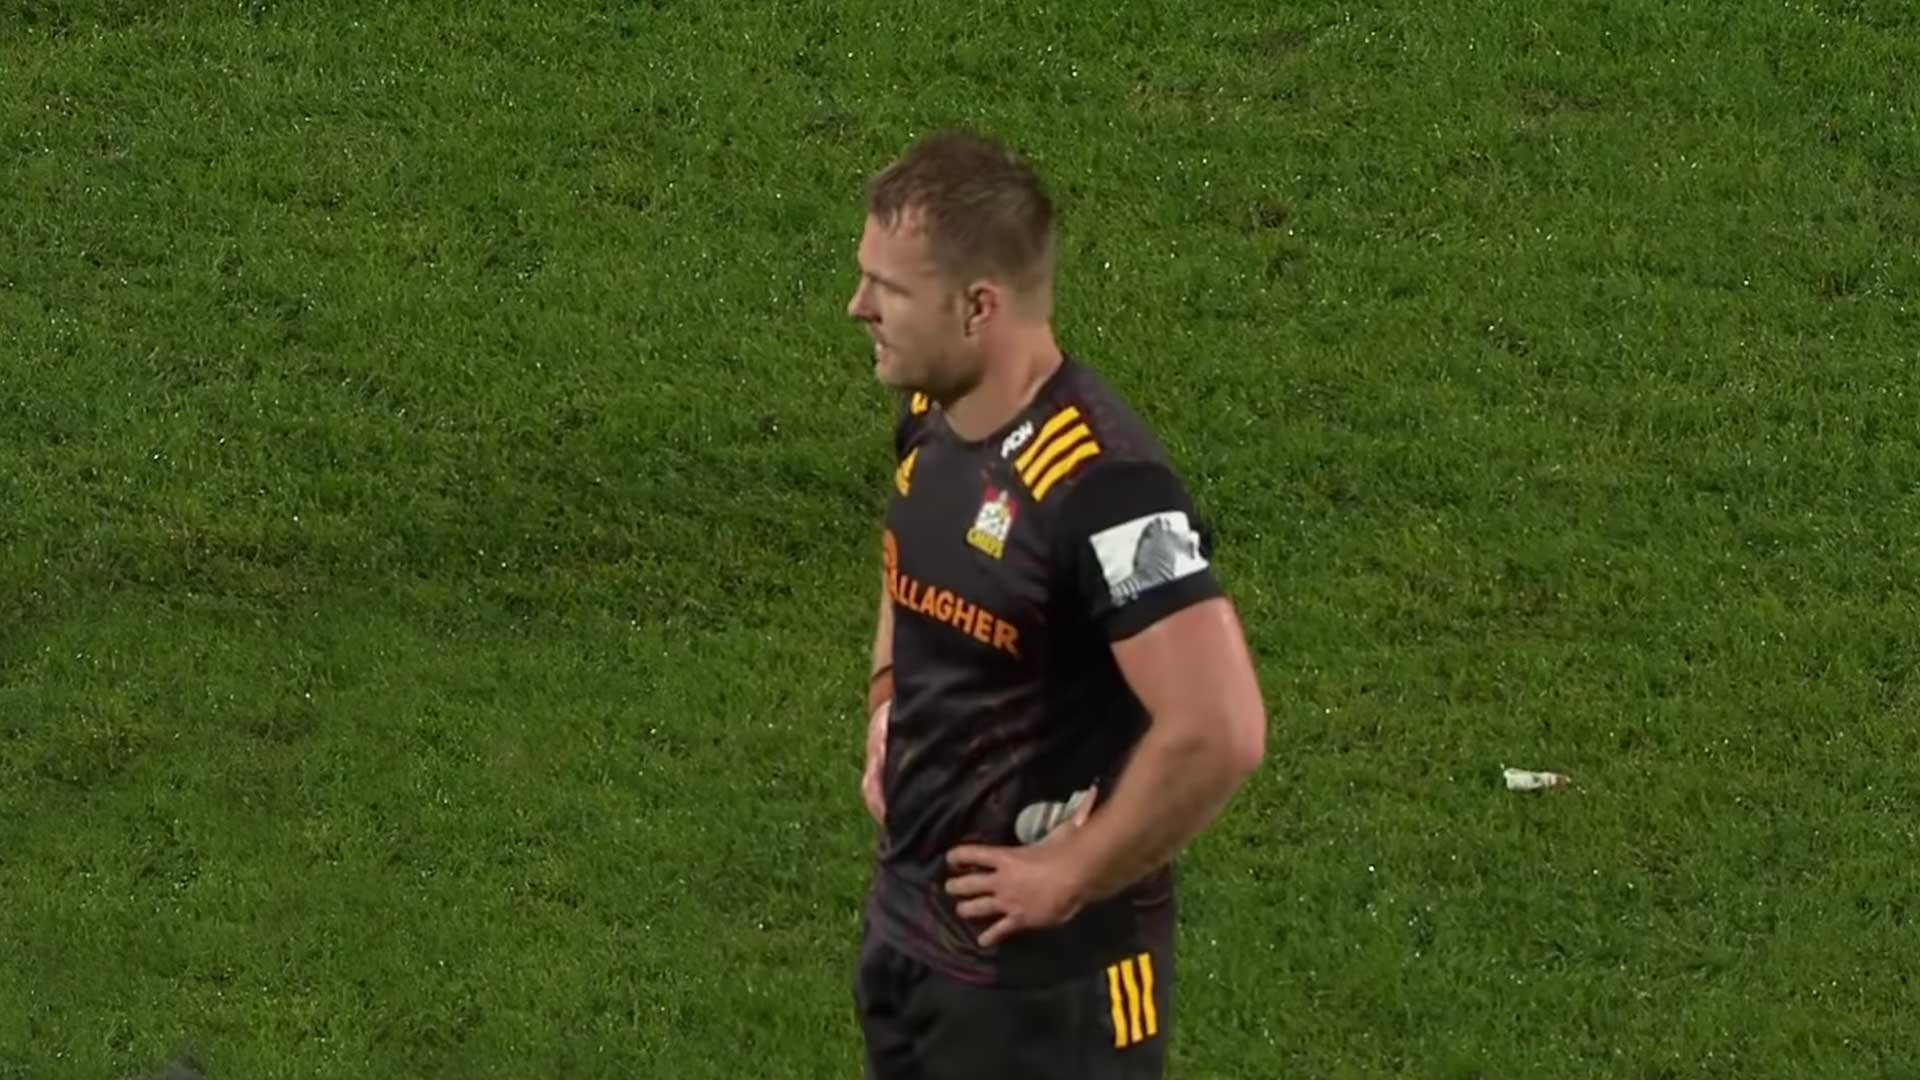 Rugby fans worried about All Black Sam Cane after play cam reveals worrying trend